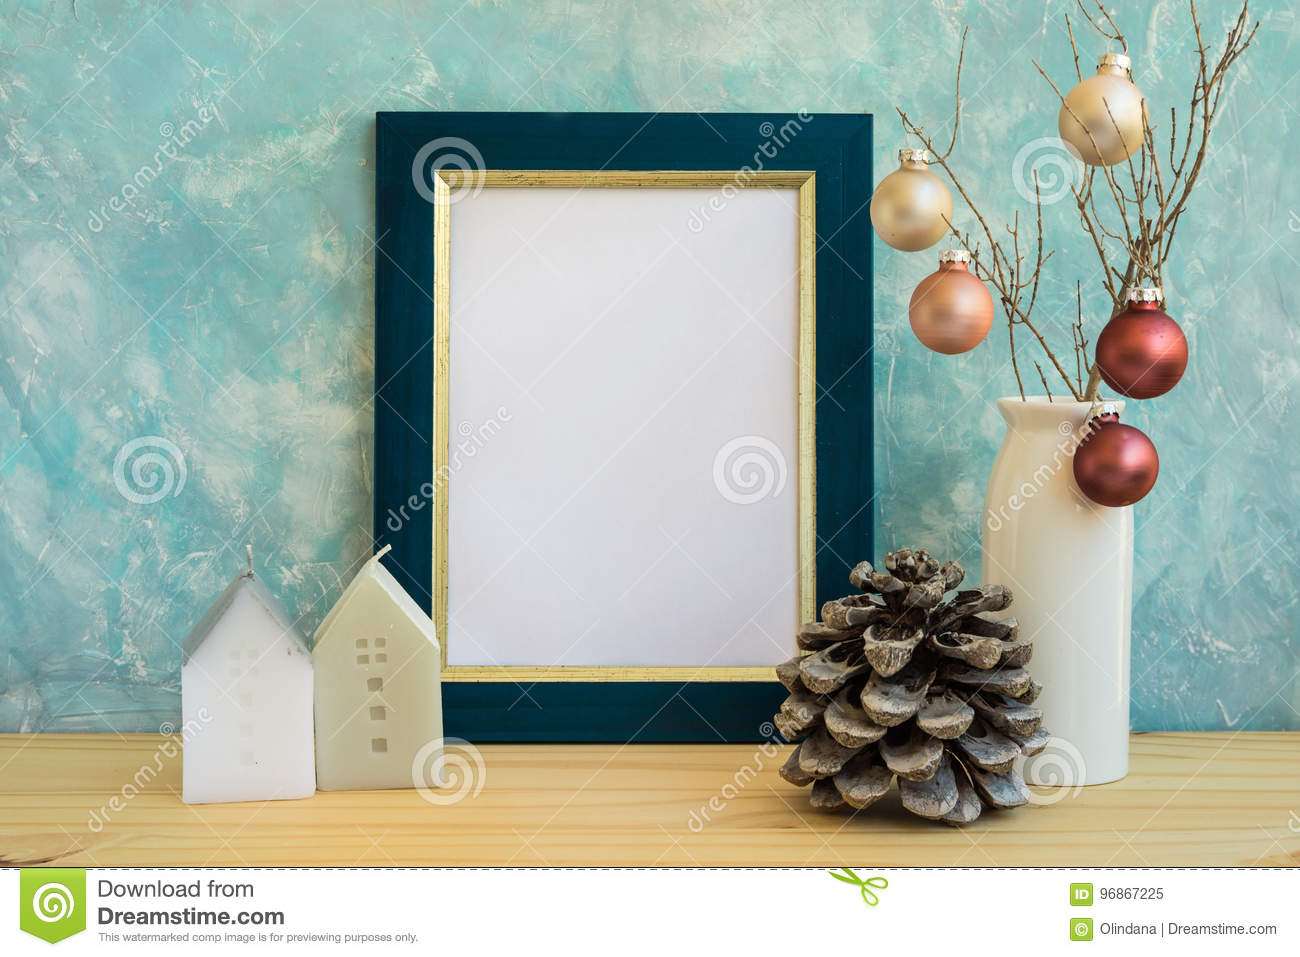 Blue and golden frame mock up, Christmas, New Year, pine cone, colorful baubles, house candles, space for quotes